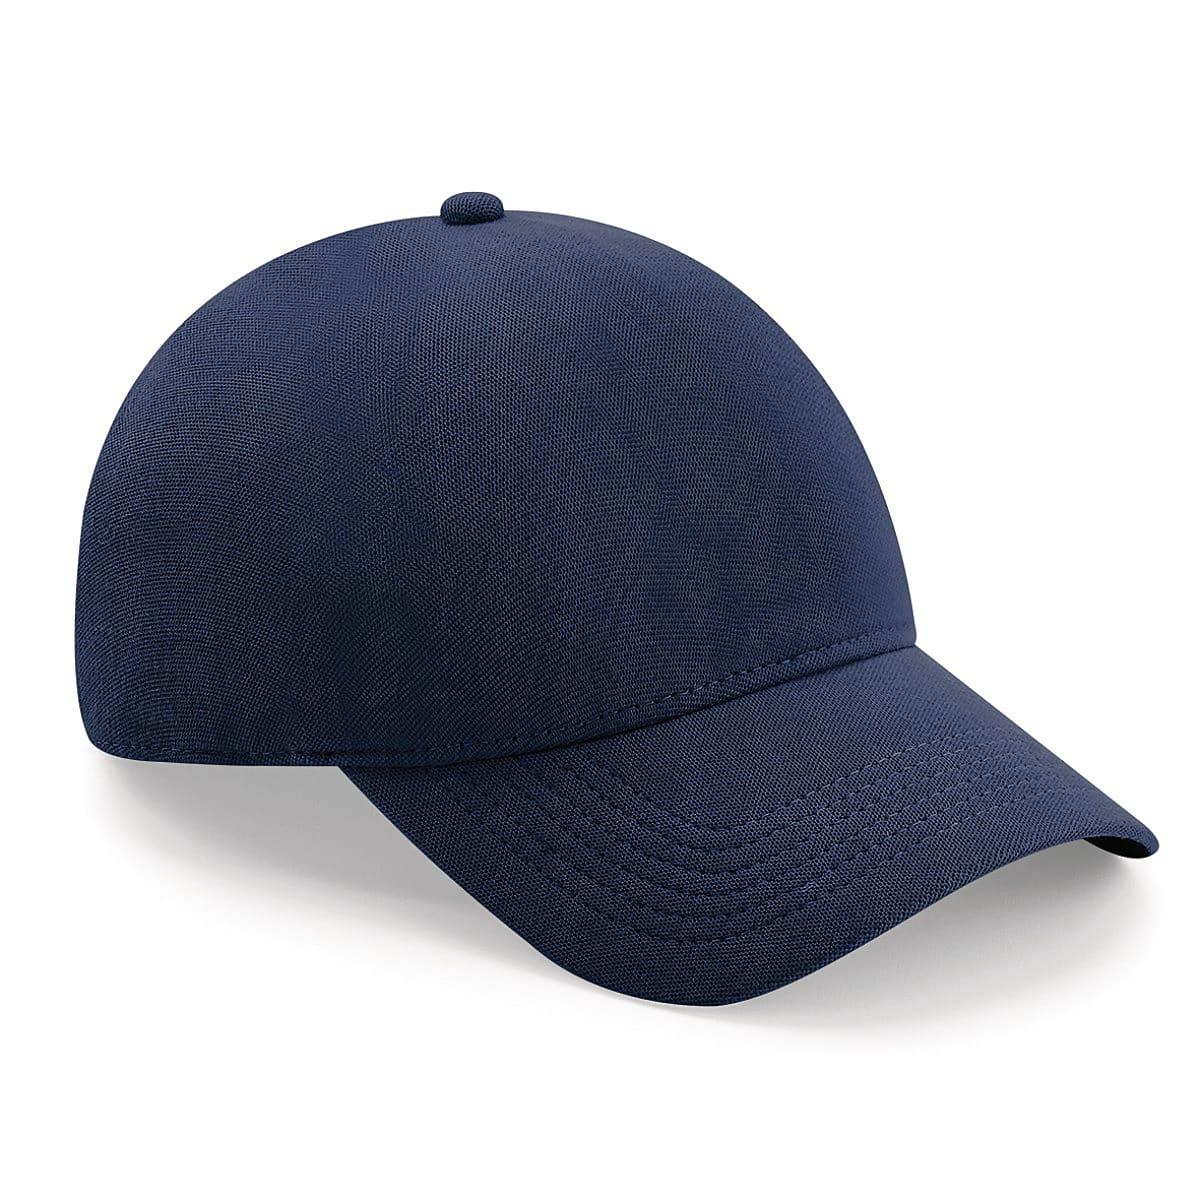 Beechfield Seamless Waterproof Cap in Navy Blue (Product Code: B550)